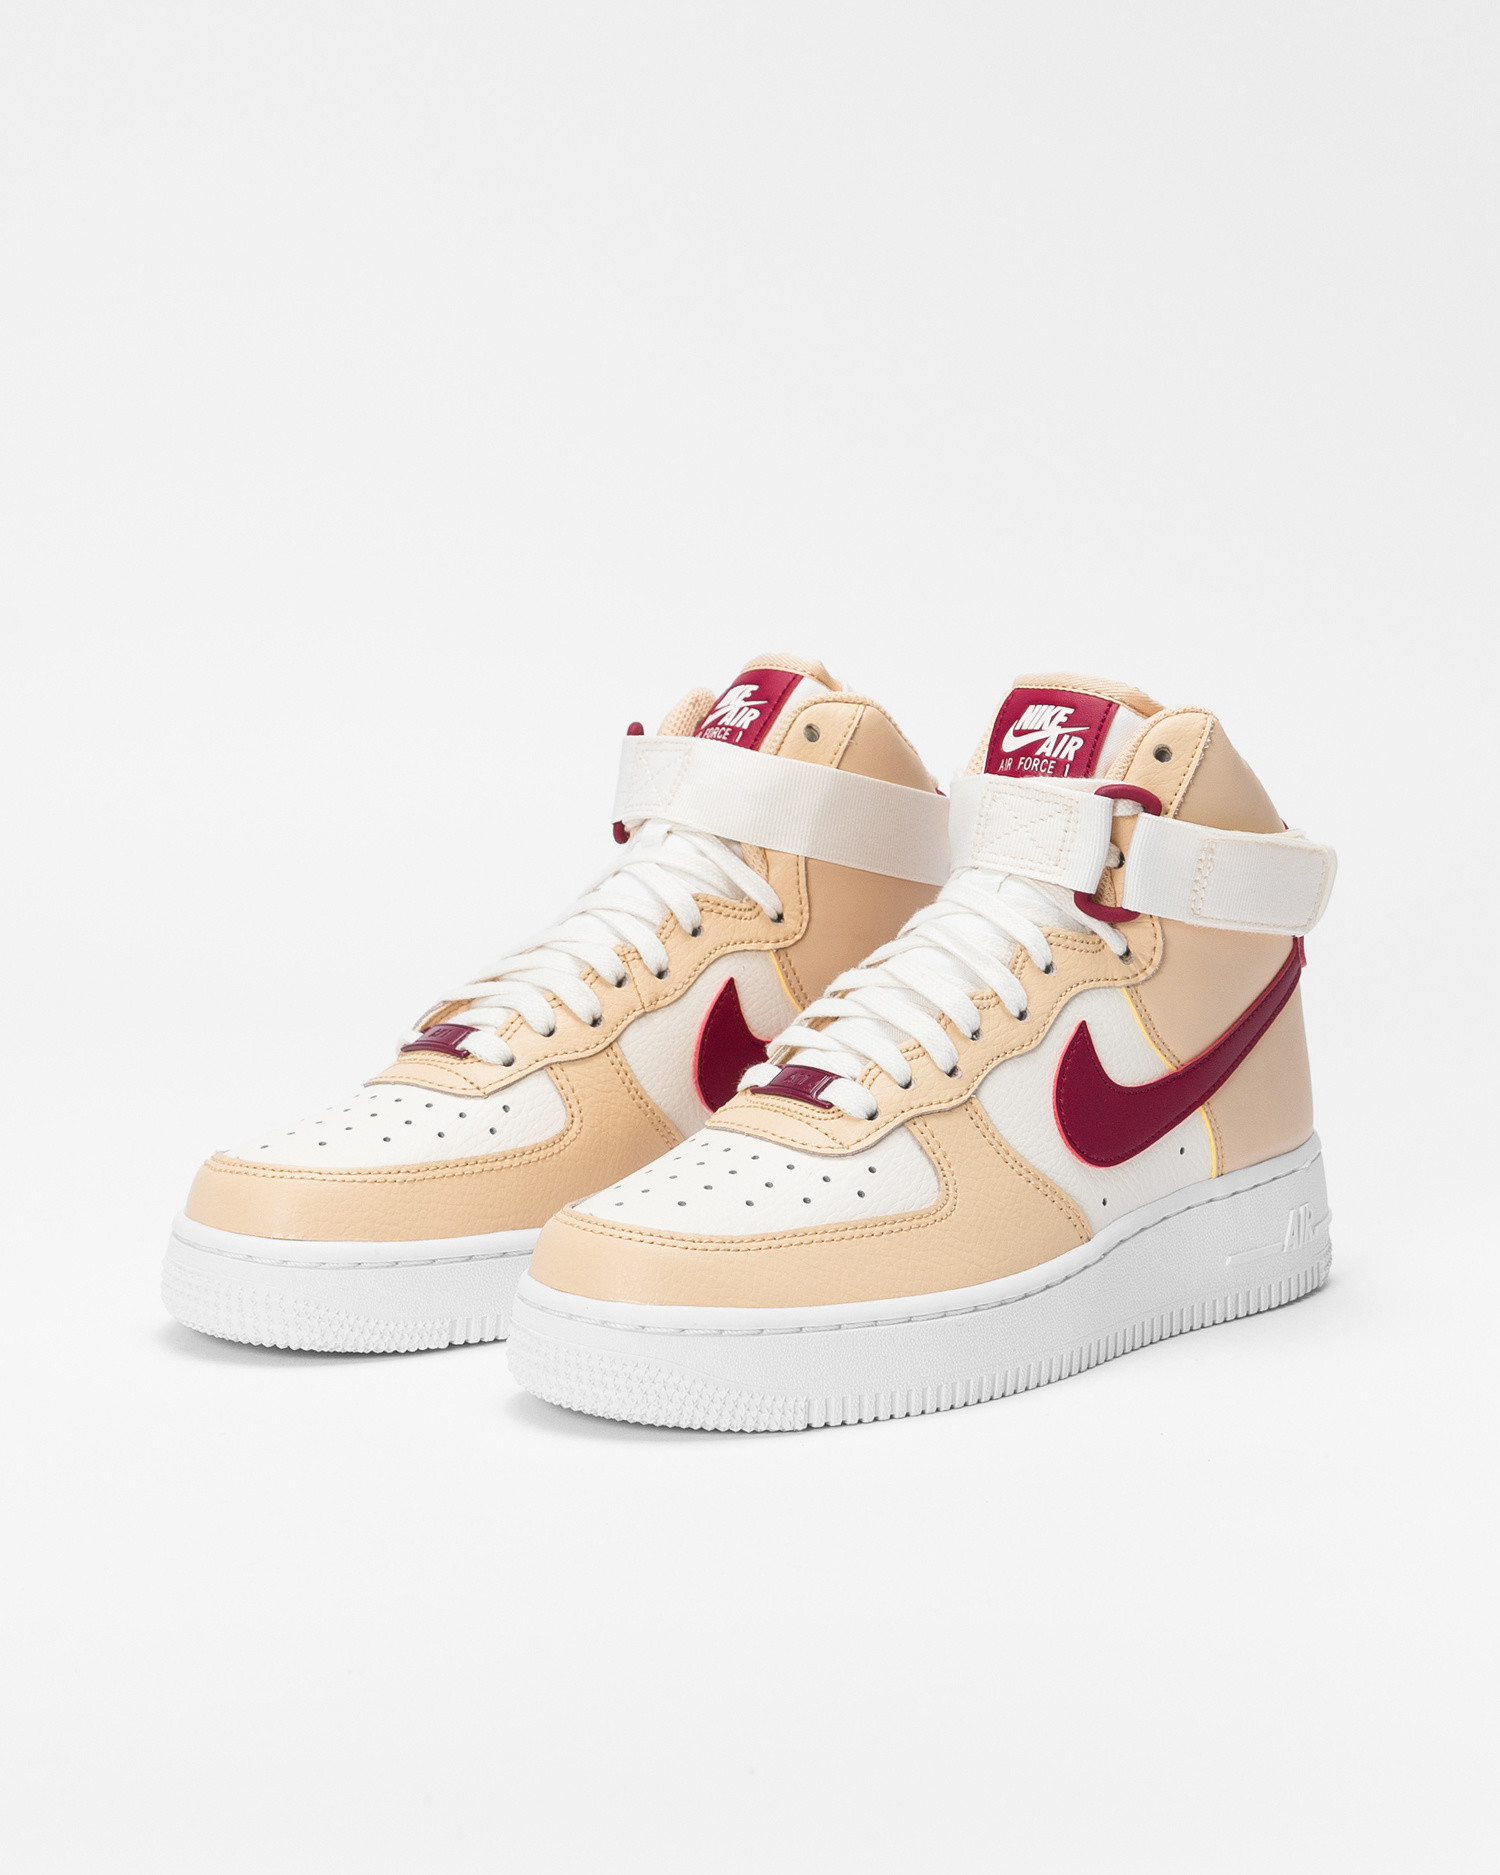 Nike Wmns Air Force 1 High White onyx/noble red-pale ivory-white